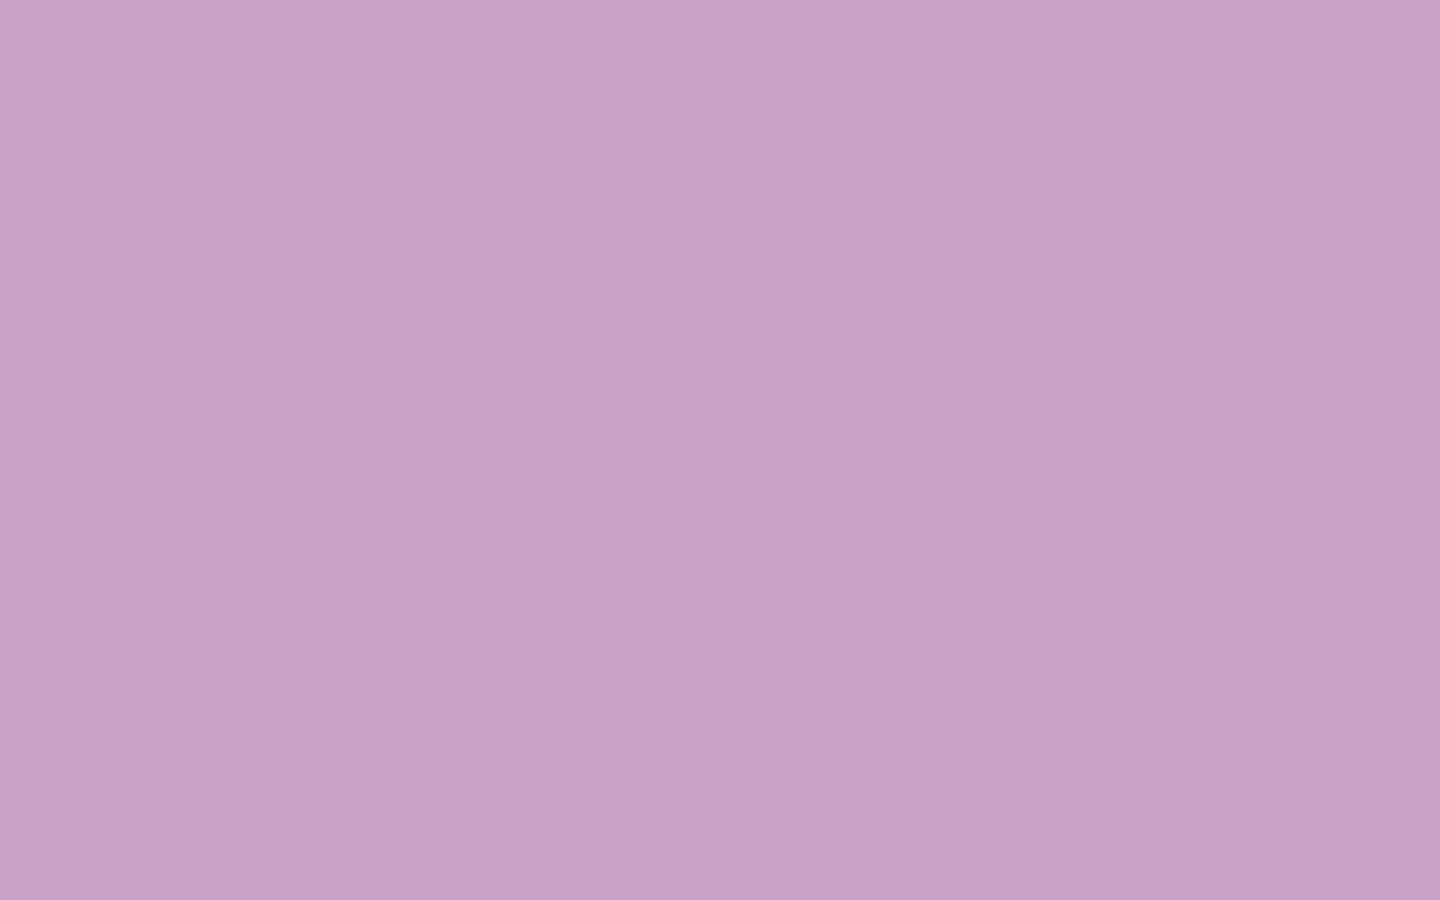 1440x900 Lilac Solid Color Background